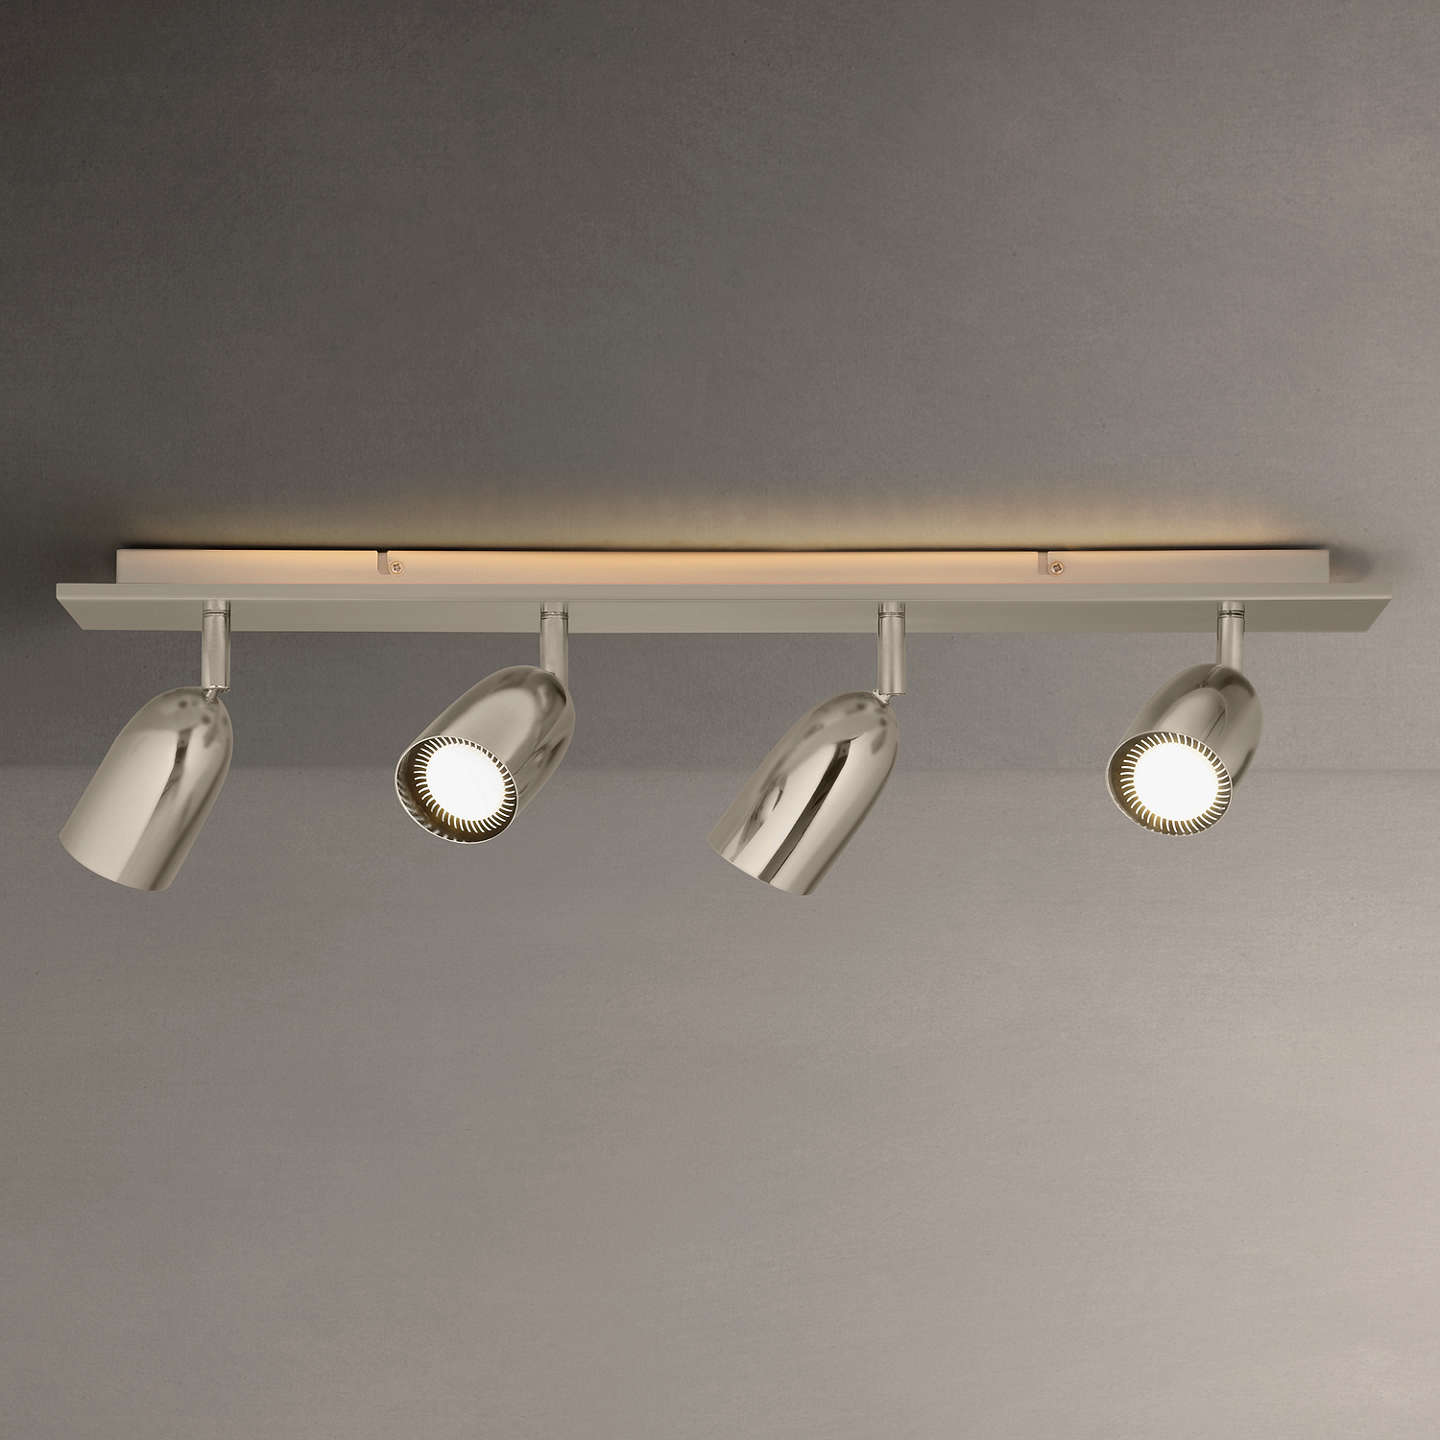 Buyjohn Lewis Modena Led Backlight Spotlights, Silver, 4 Light Online